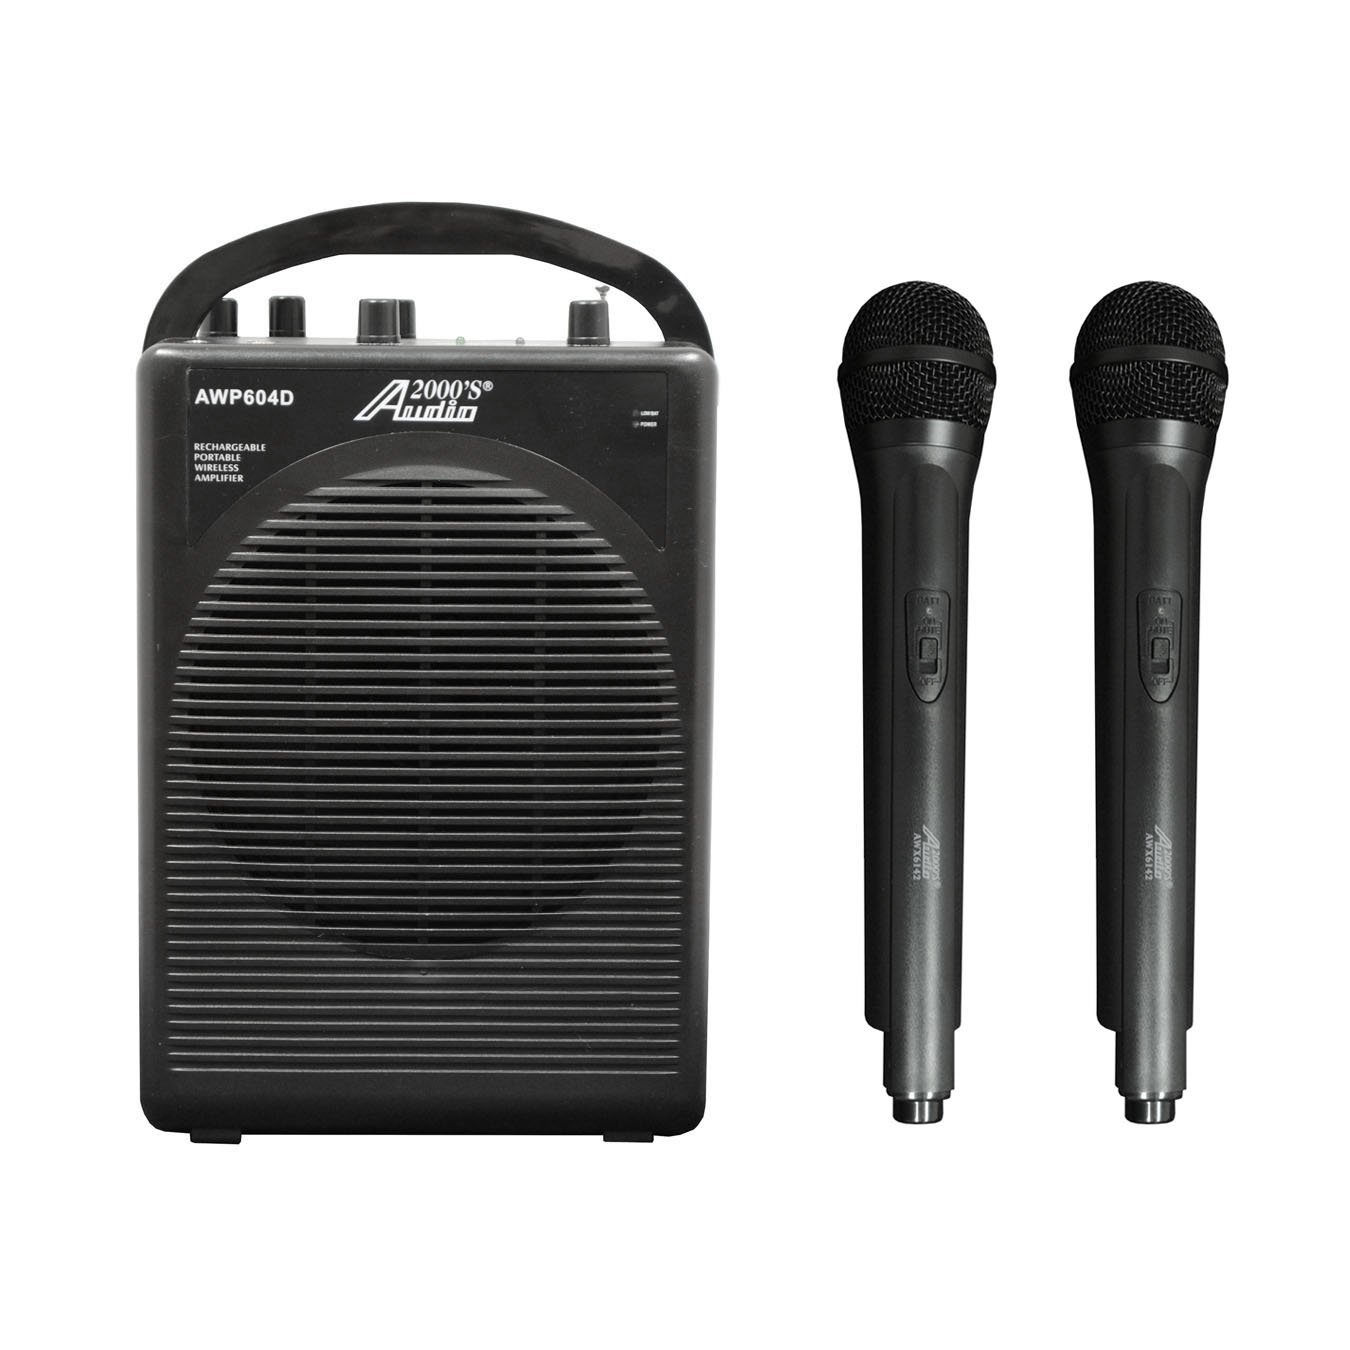 Audio 2000s Dual Channel Wireless Microphone Portable PA System AWP604D